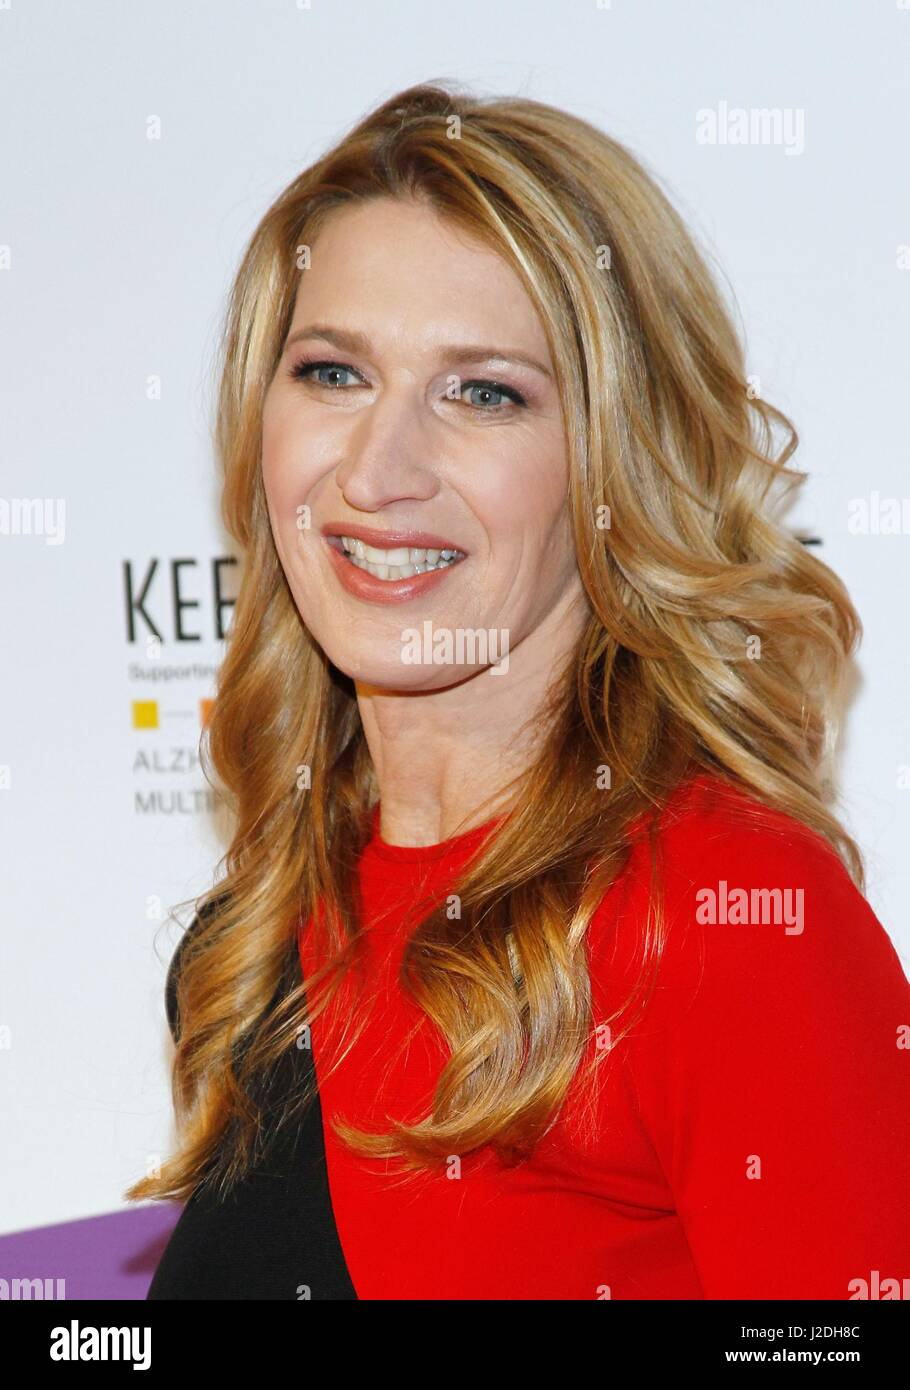 Las Vegas, NV, USA. 27th Apr, 2017. Steffi Graf at arrivals